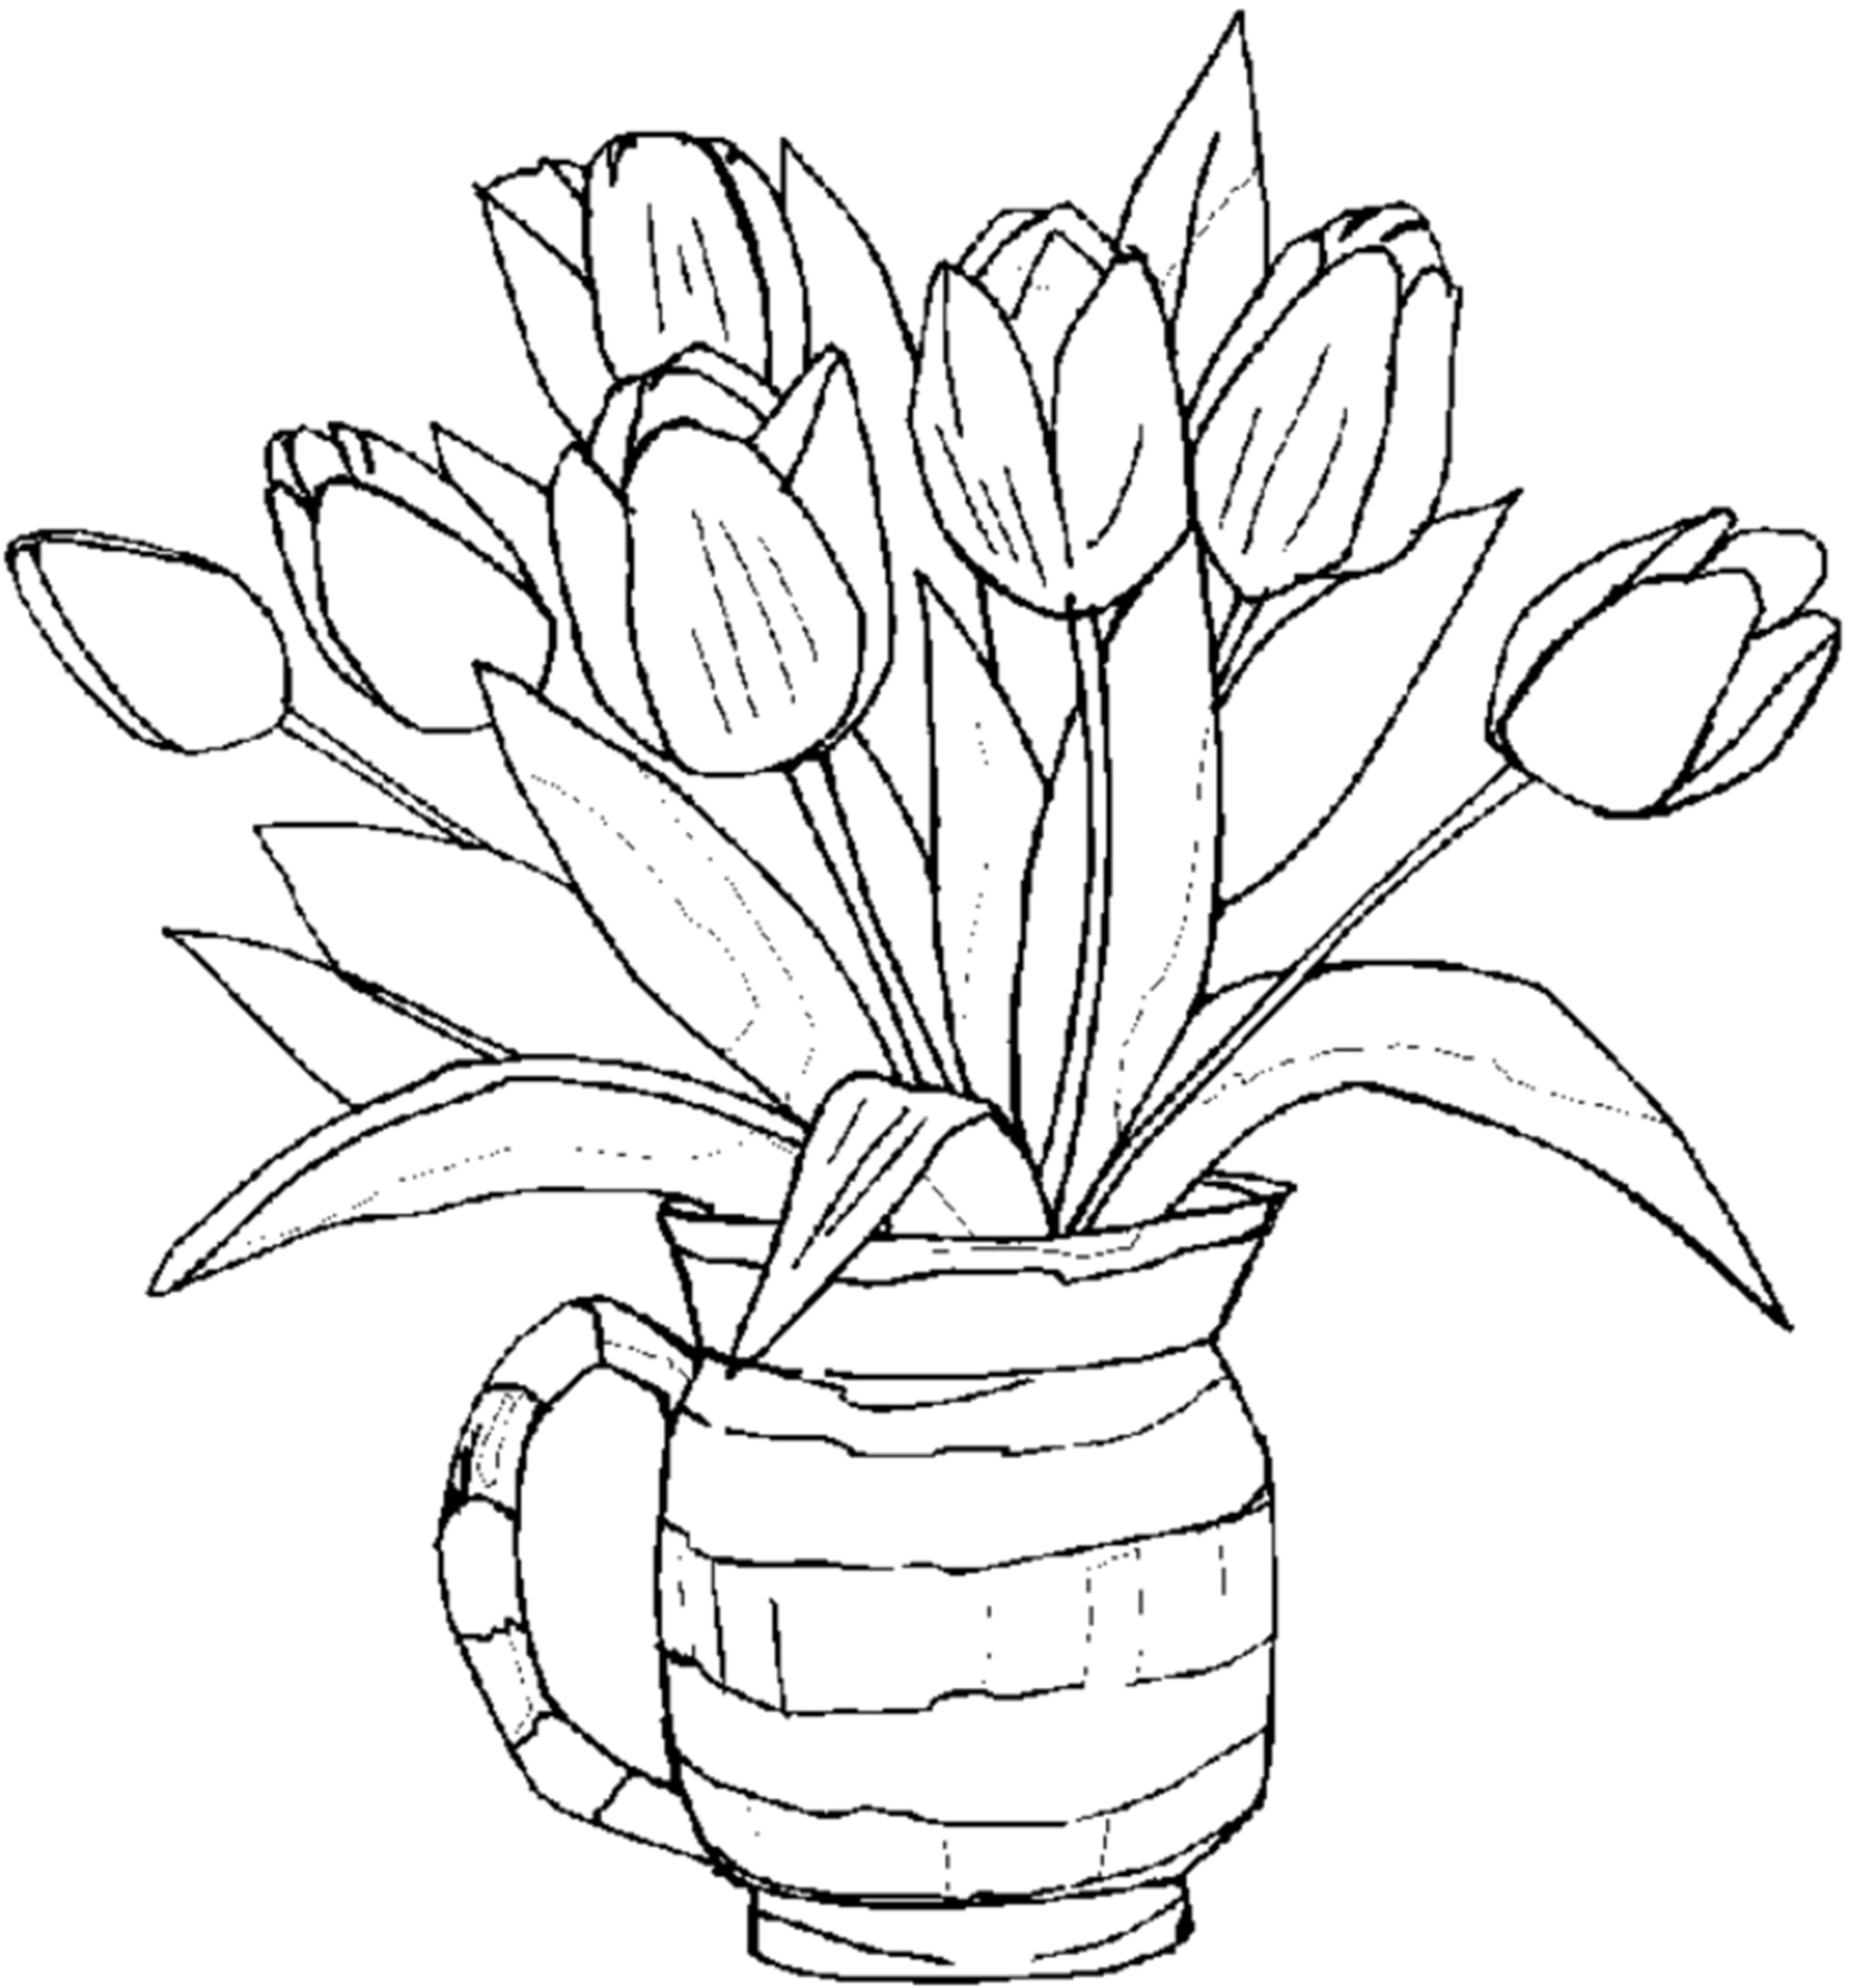 colouring pictures of plants free printable flower coloring pages for kids best plants colouring pictures of